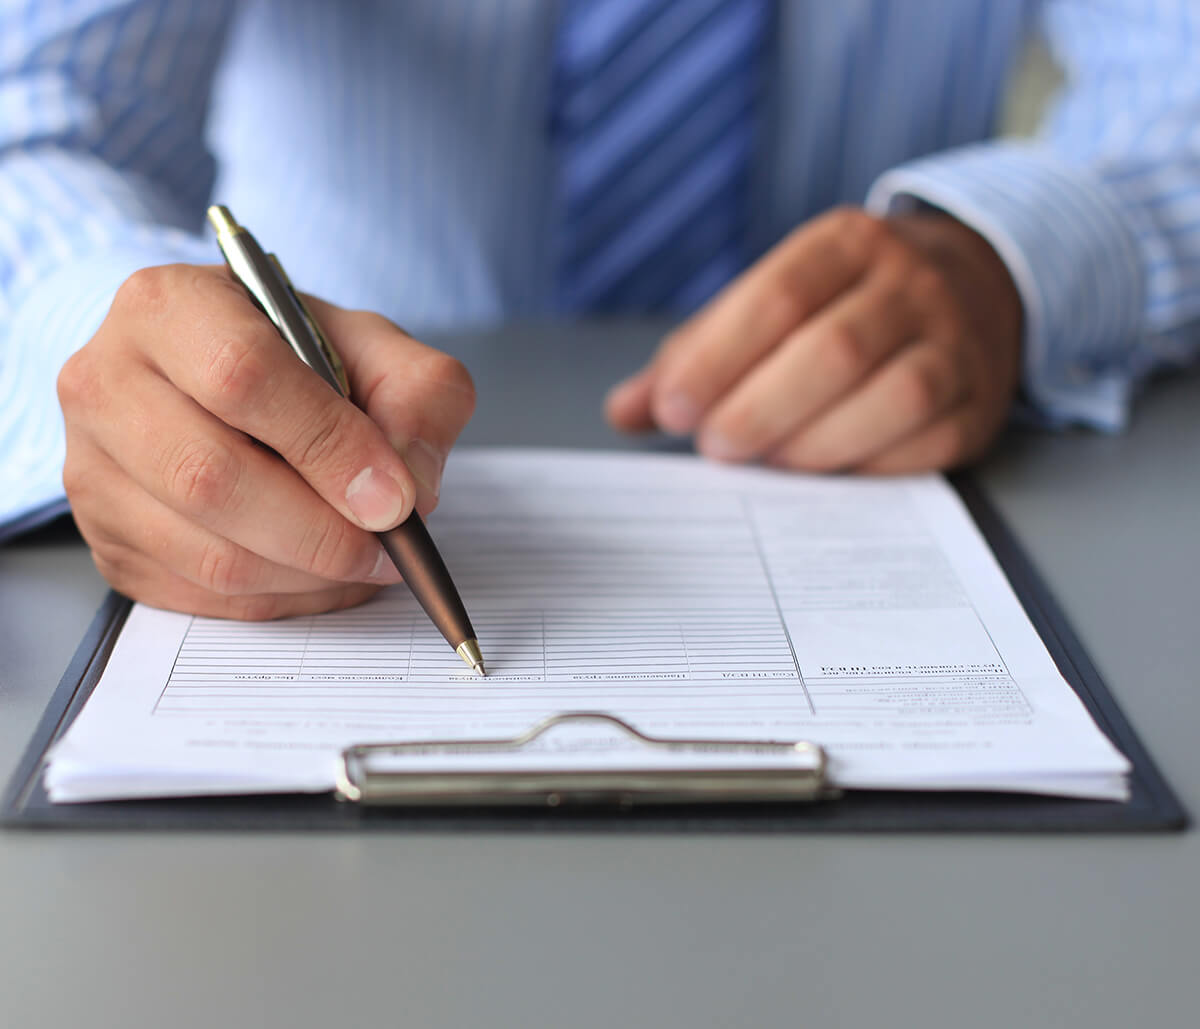 Hire a Business Lawyer in Mississauga Area to Protect Your Company